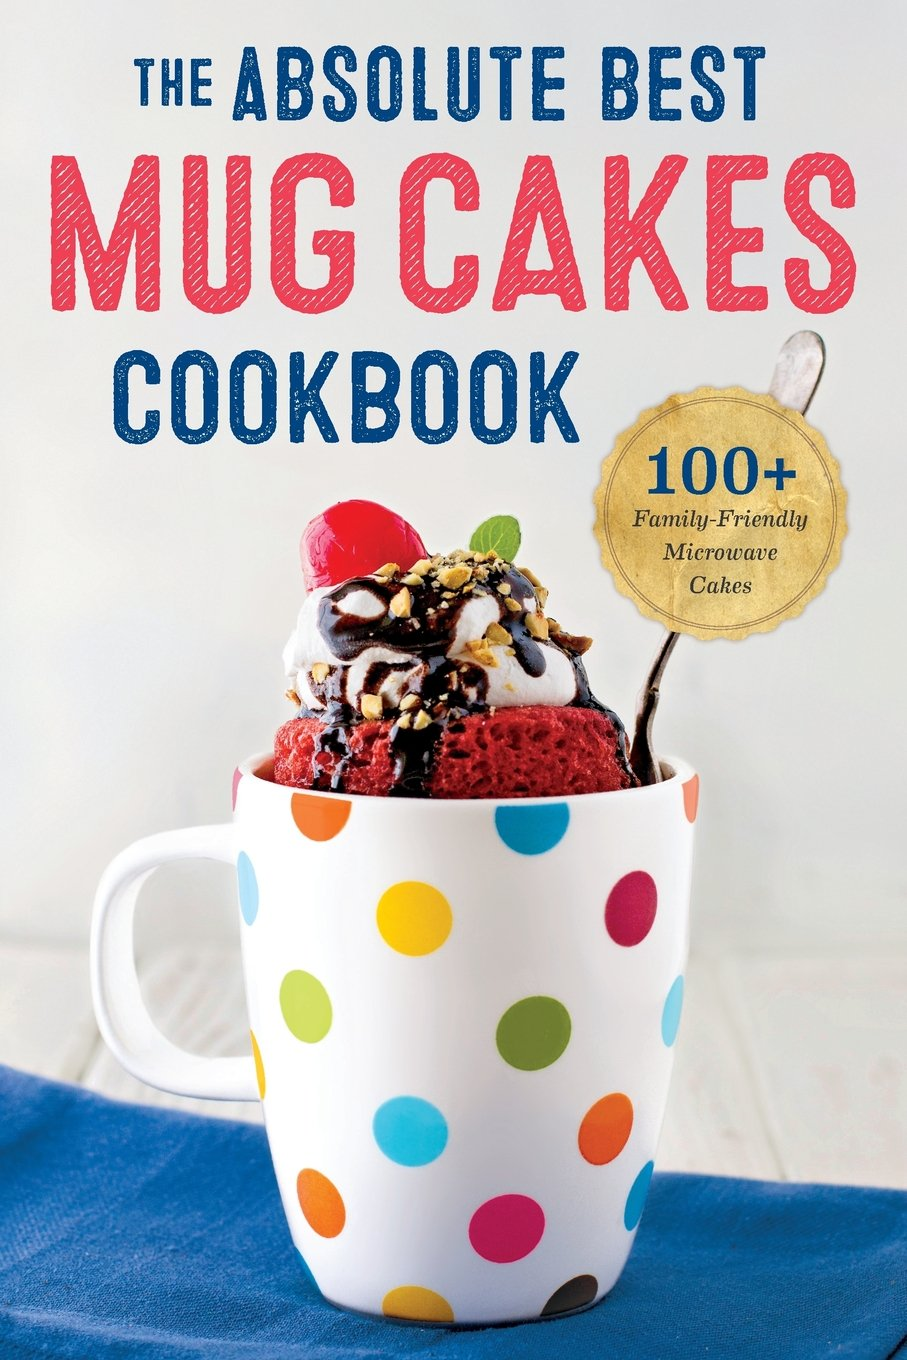 Absolute Best Mug Cakes Cookbook: 100 Family-Friendly Microwave Cakes pdf